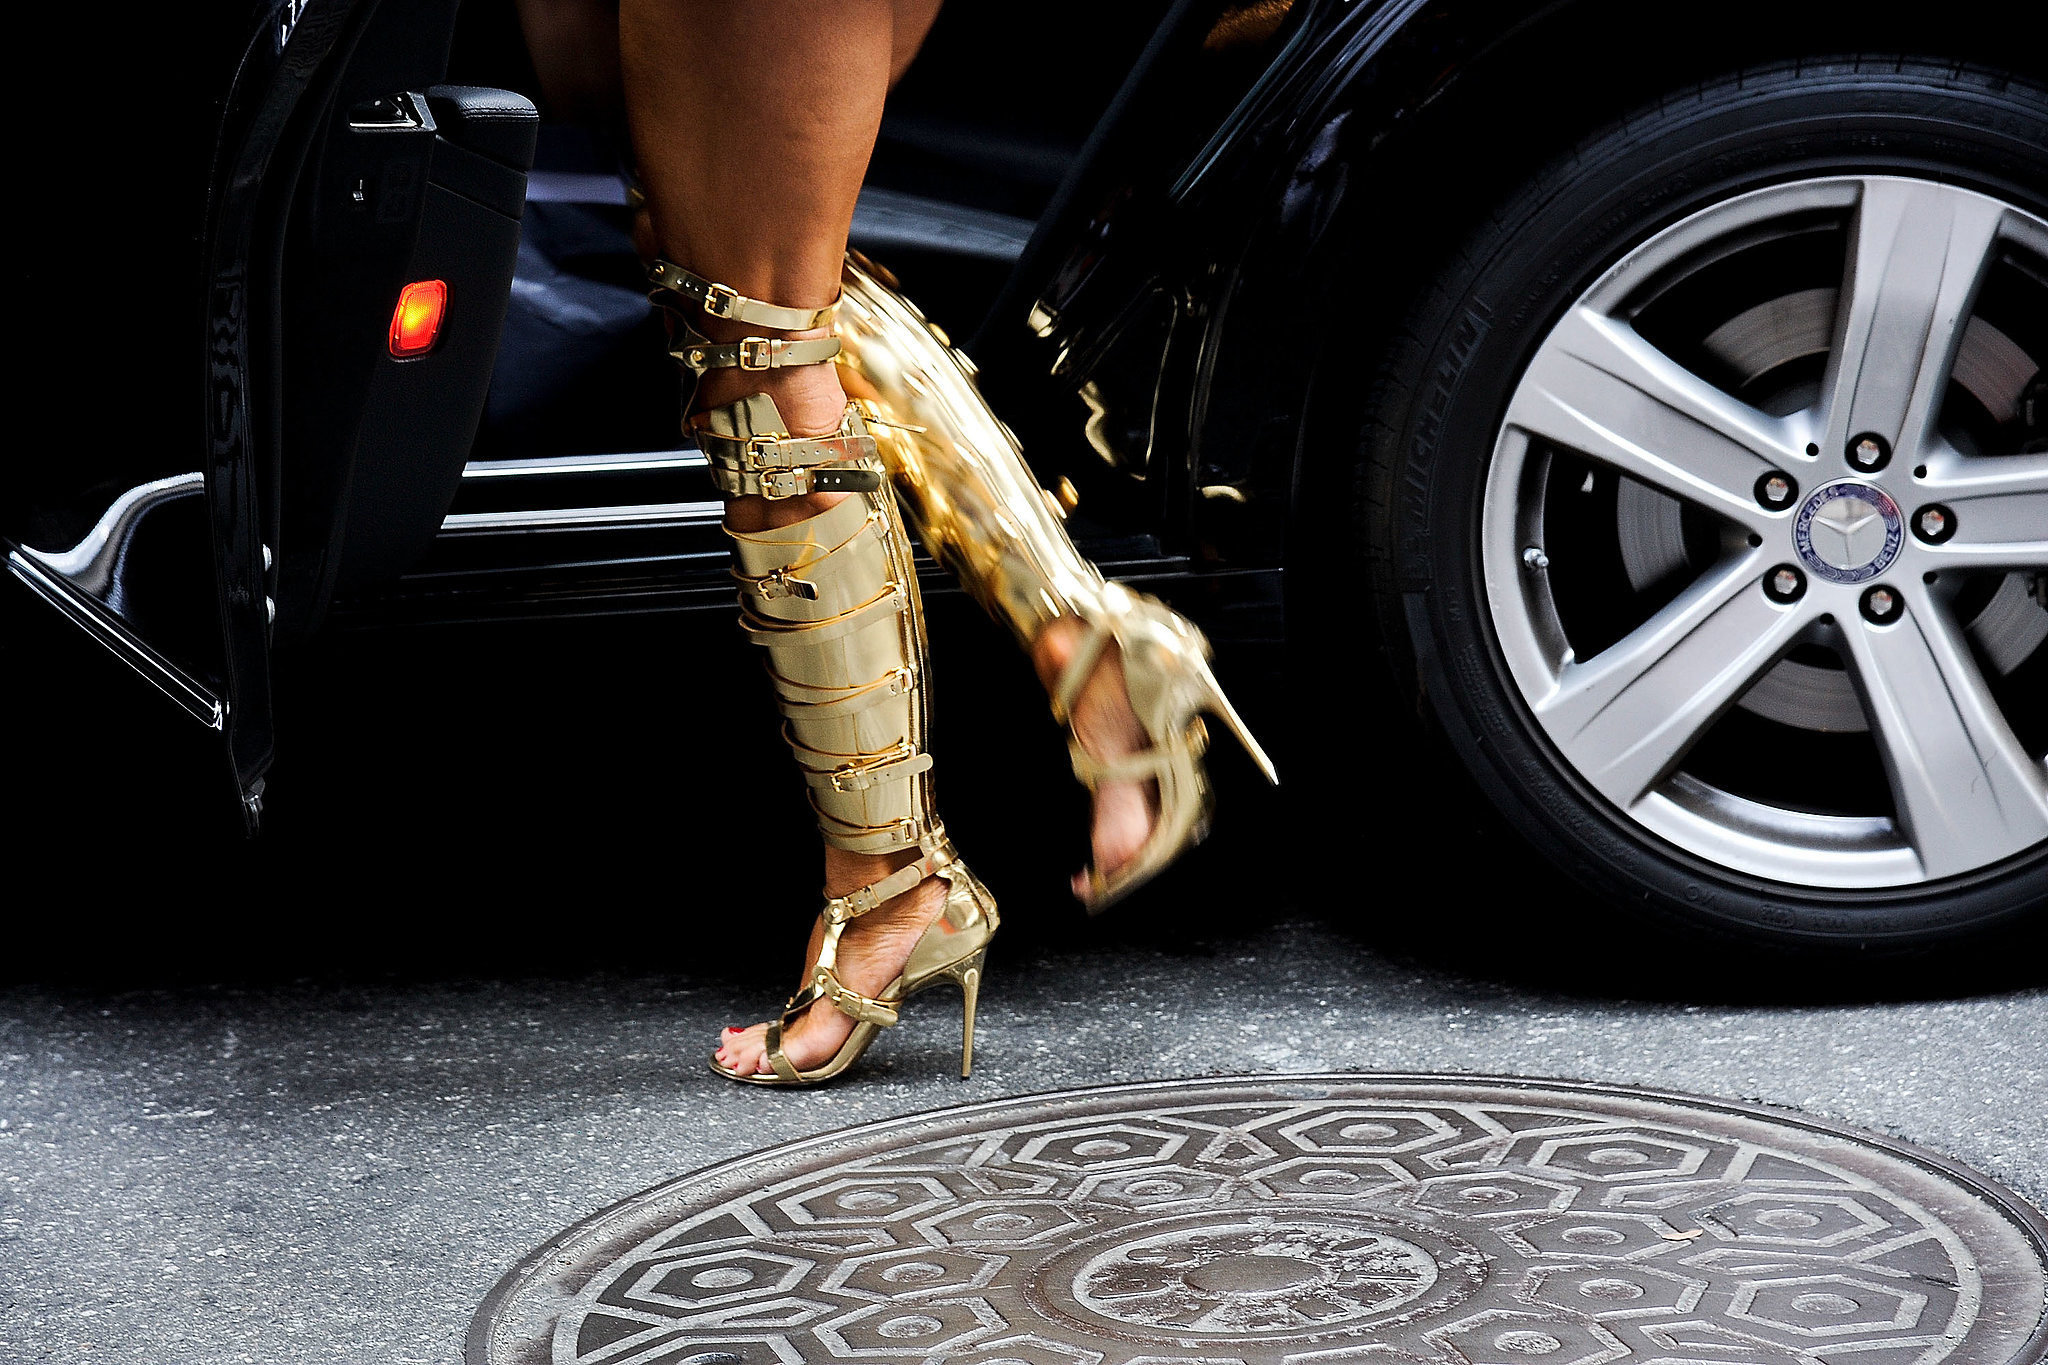 Anna Dello Russo gets our vote for most awesome heels at Fashion Week.